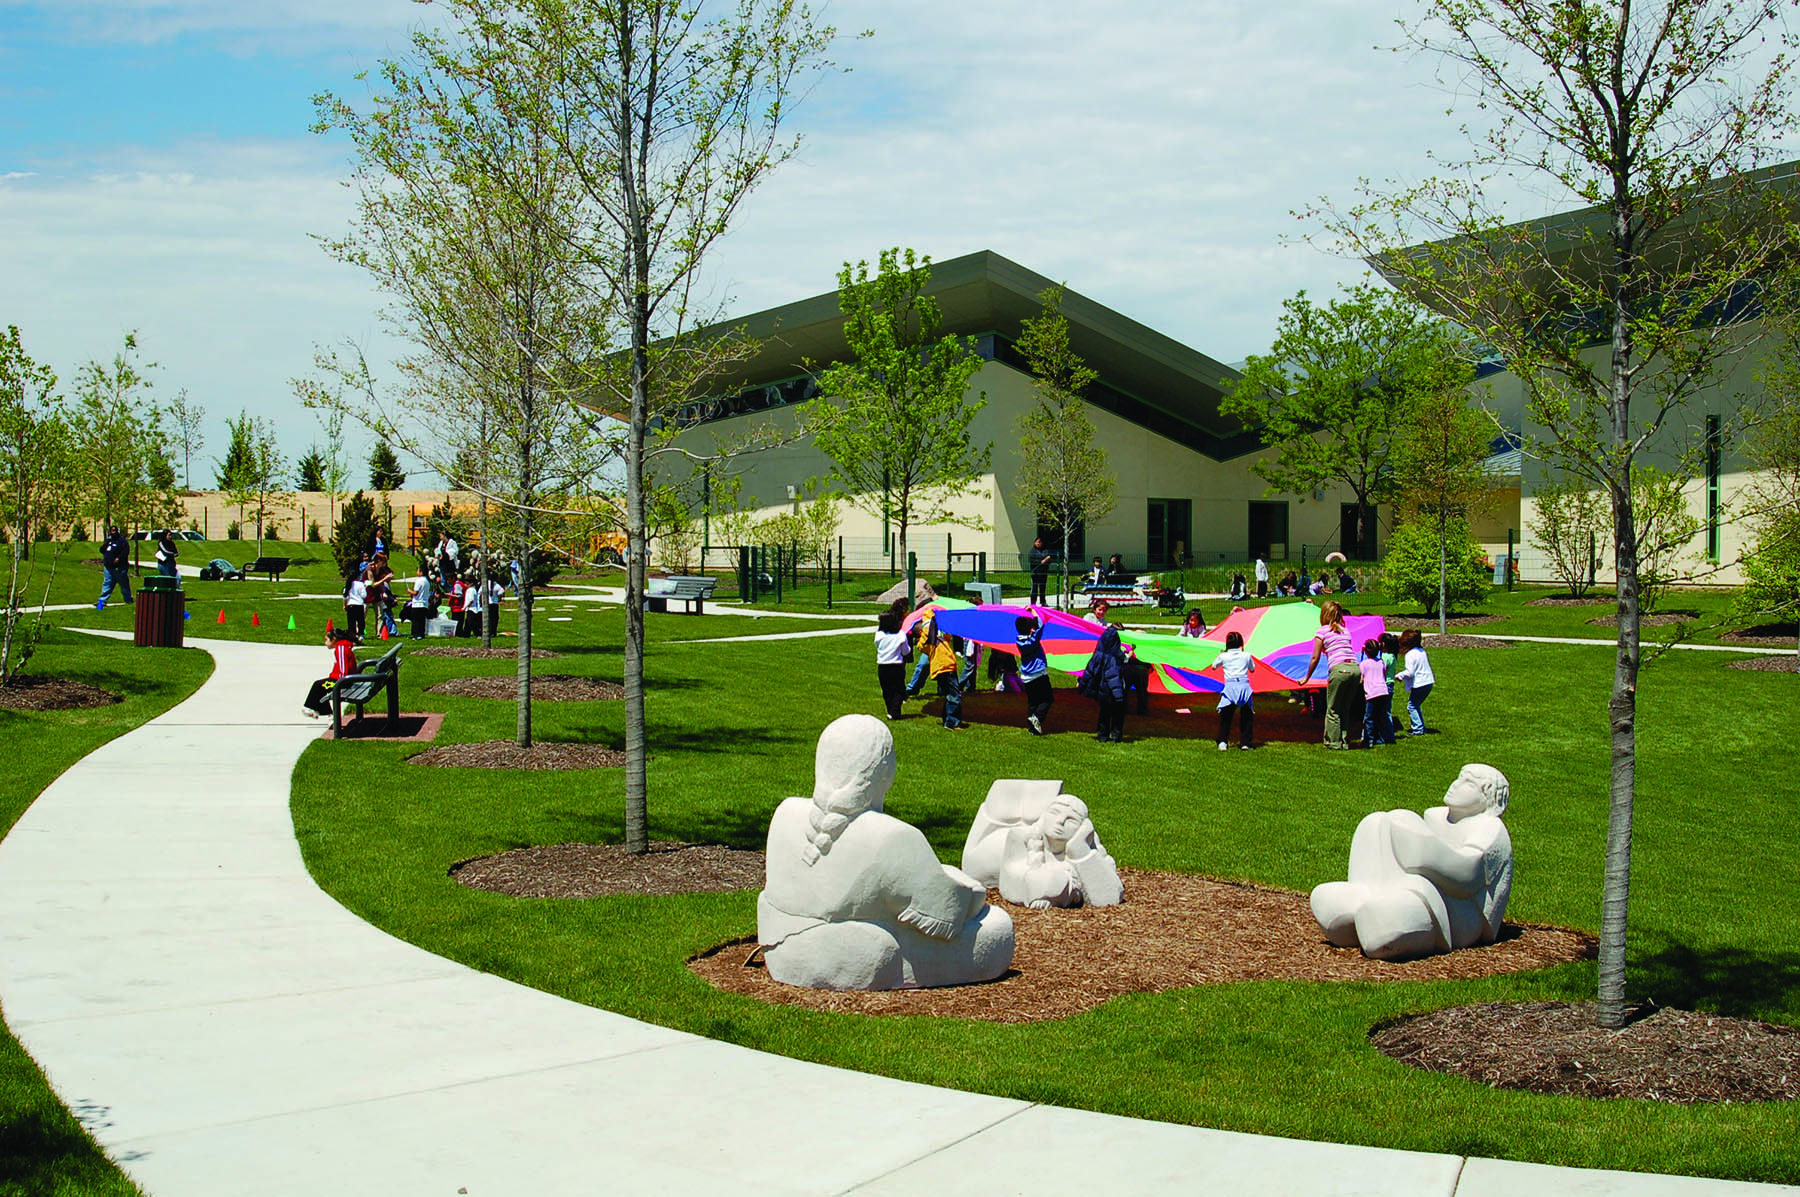 KOHL CHILDREN'S MUSEUM: Benefitting from Blackbaud Altru through Blackbaud University